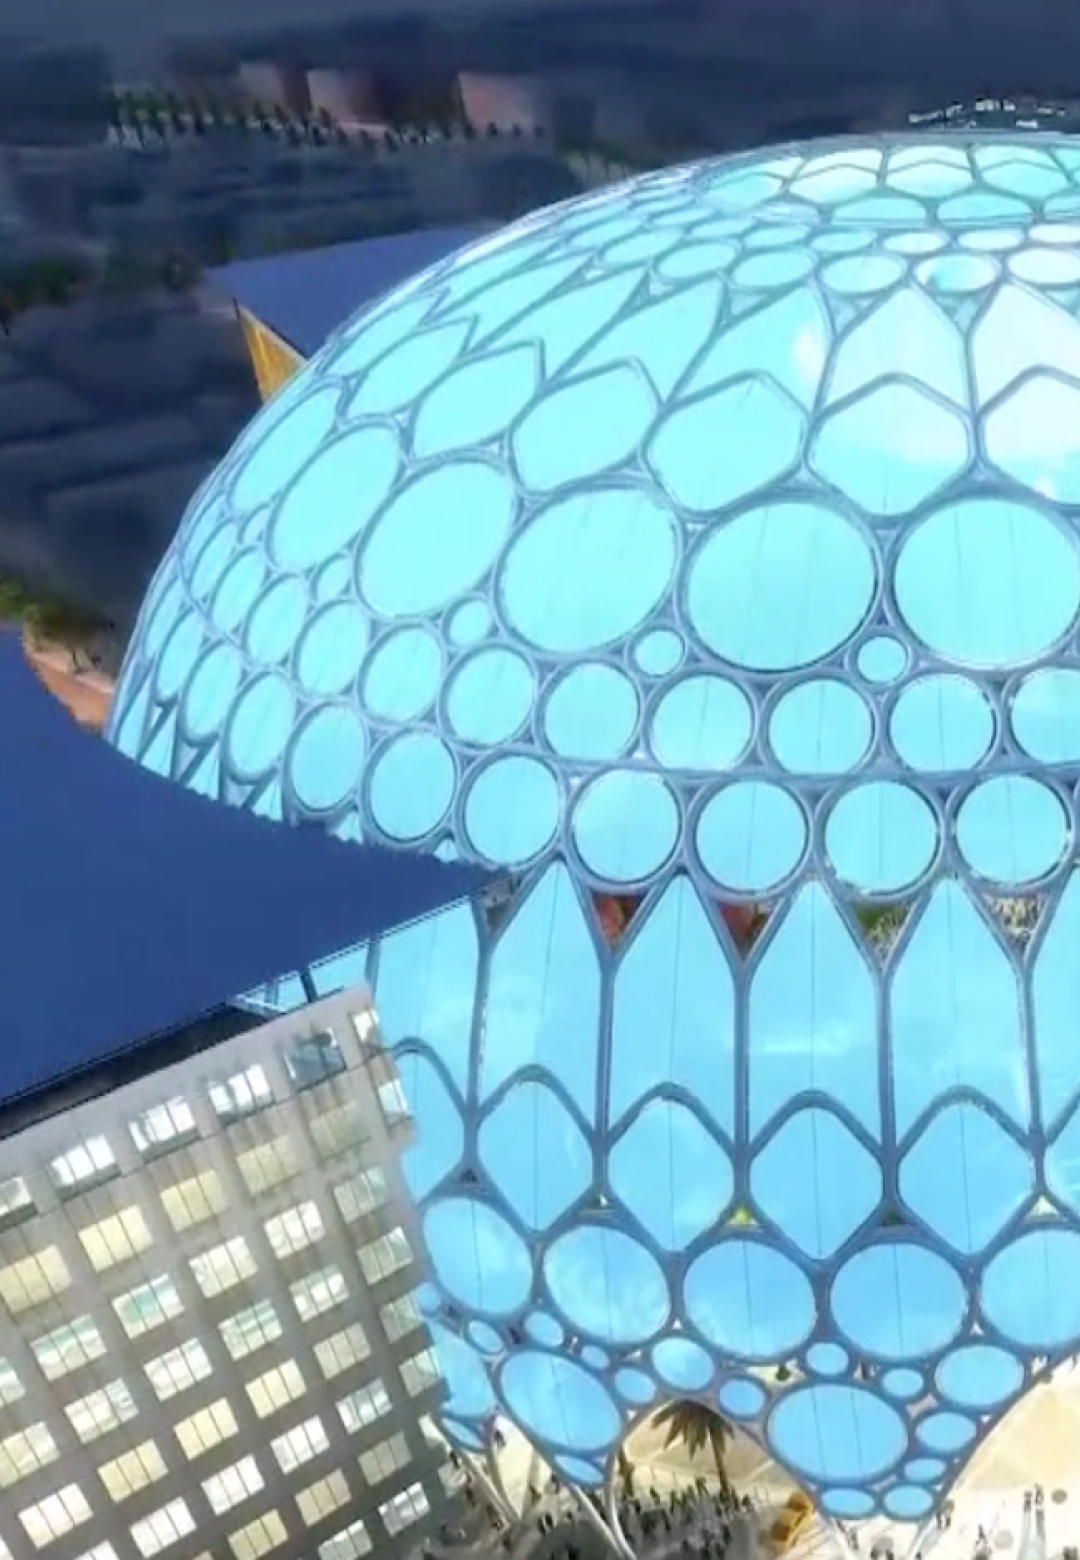 Construction of the Al Wasl Dome – An Engineering Feat | Al Wasl Dome|Expo 2020| Dubai| STIRworld